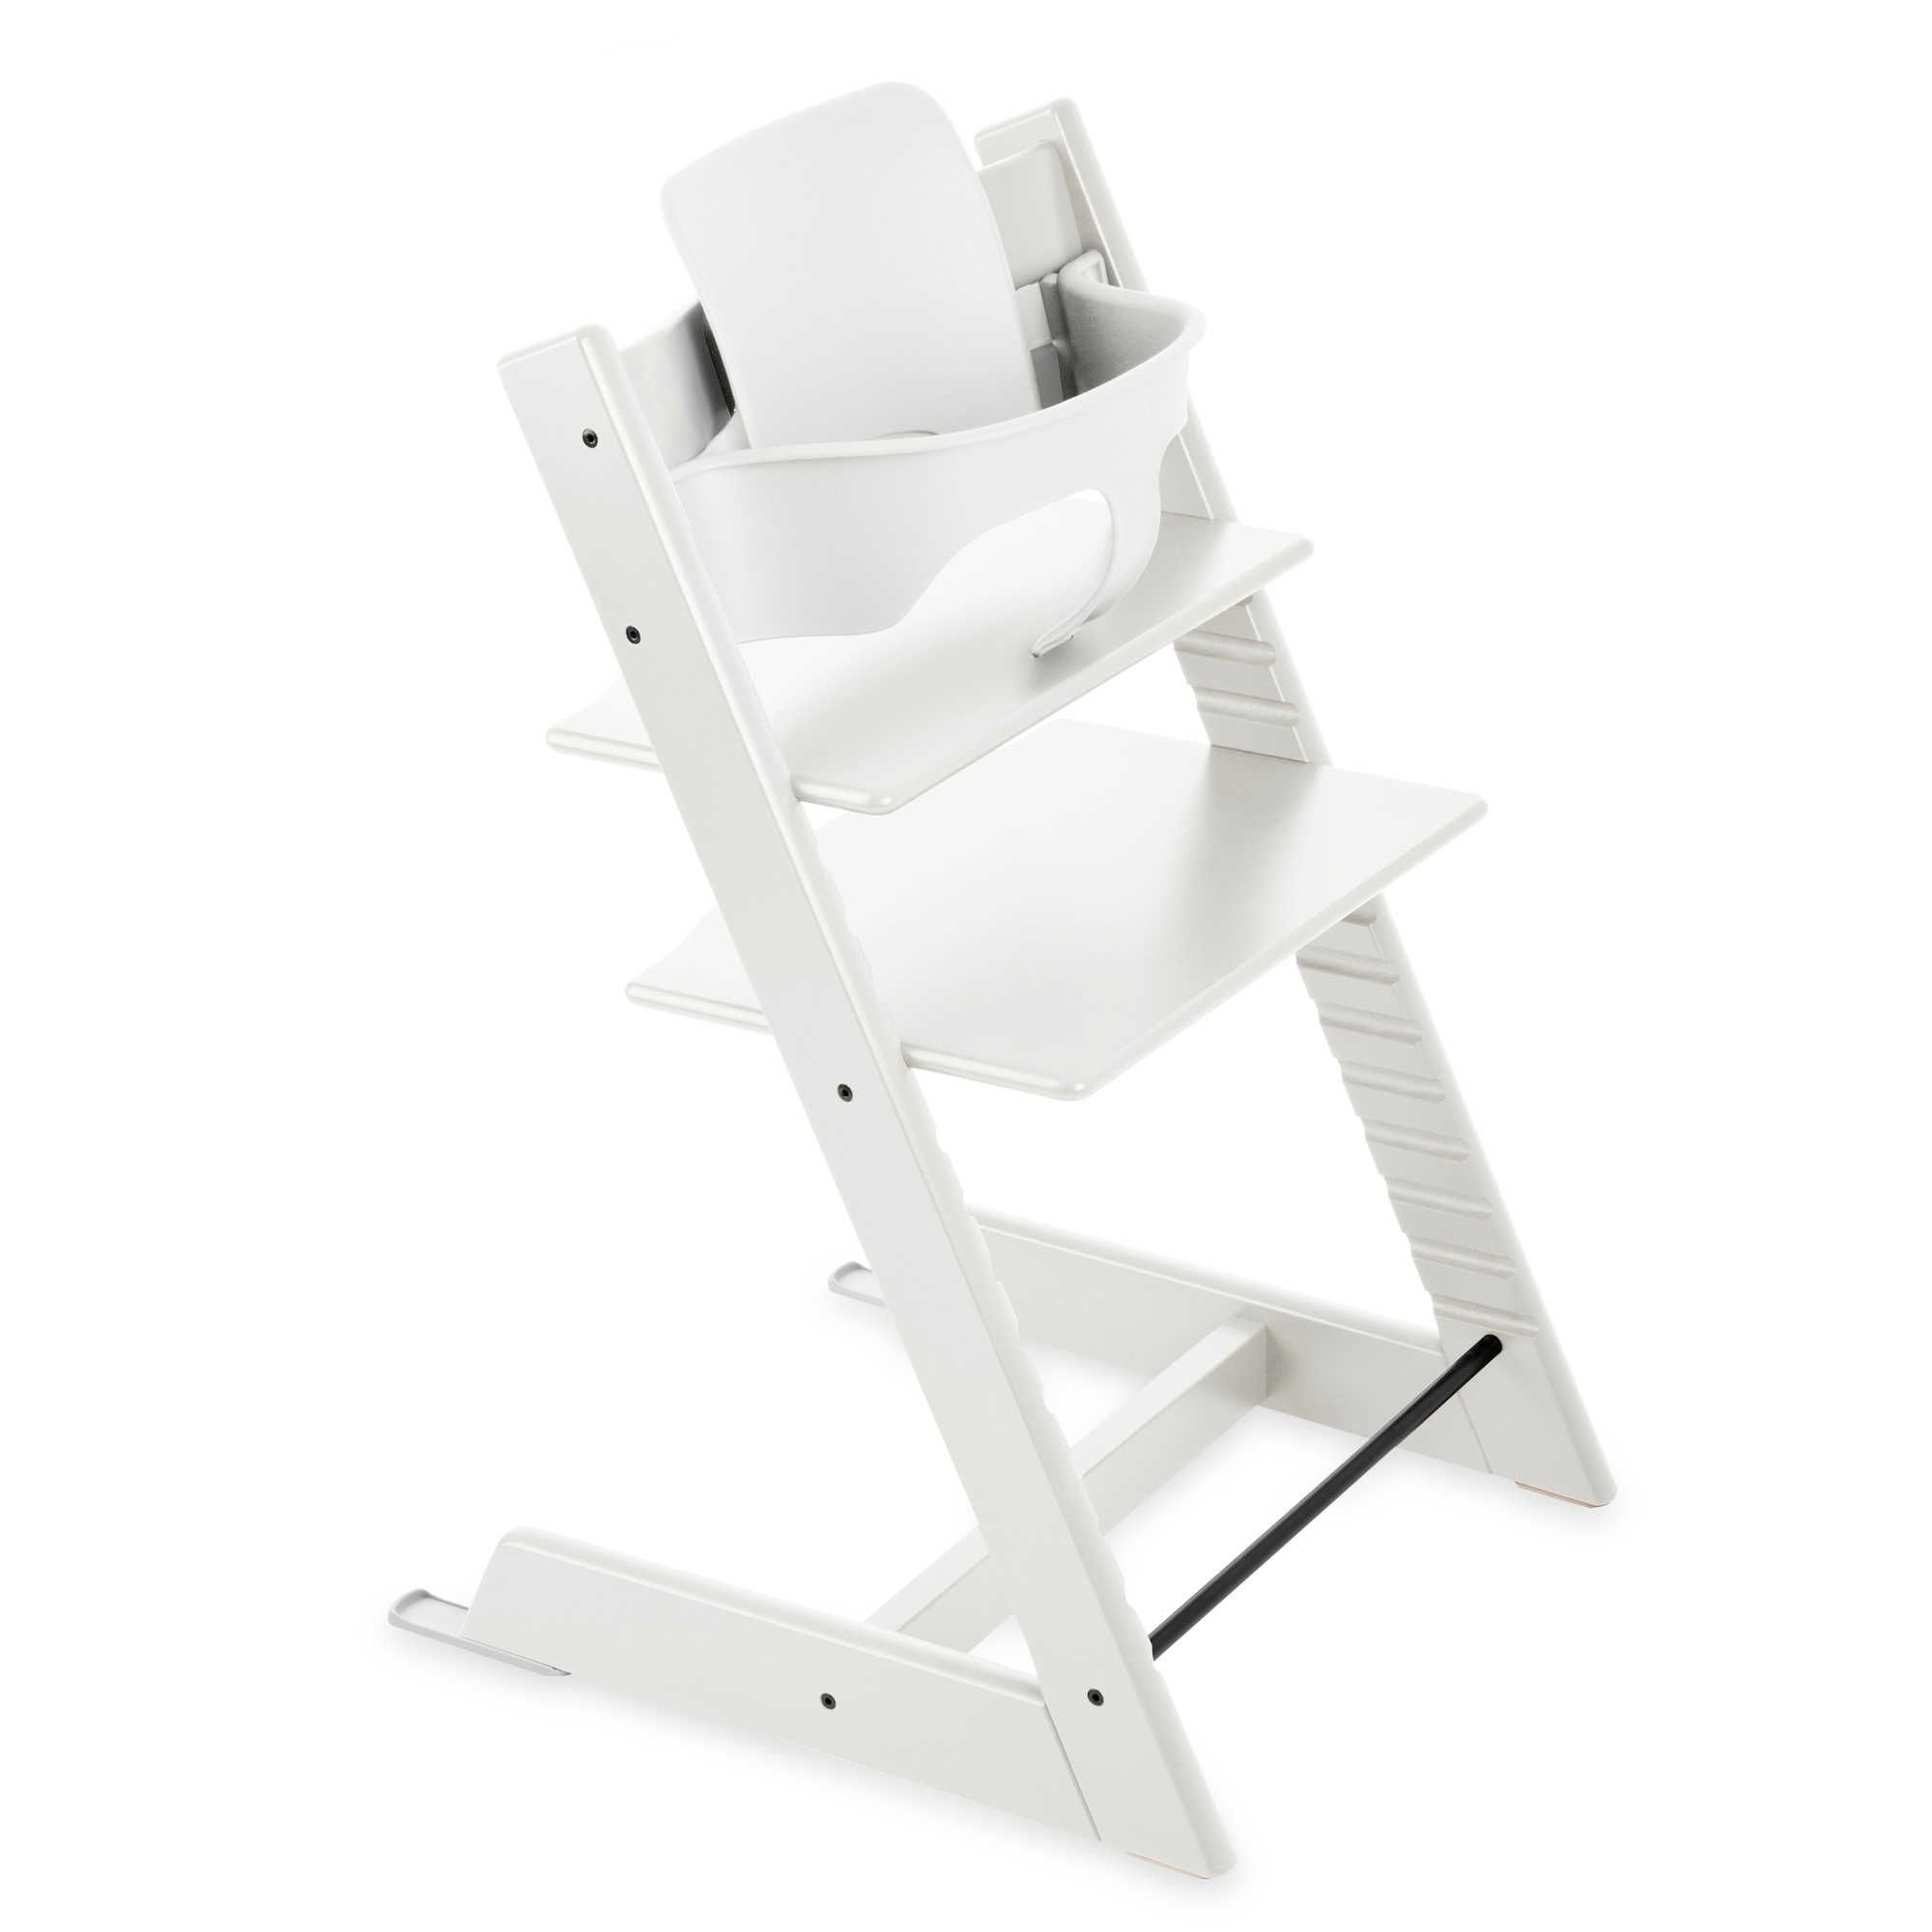 Chaise Haute Badabulle Blanc Gris Stokke Tripp Trapp Baby Set In White Baby Gear Pinterest